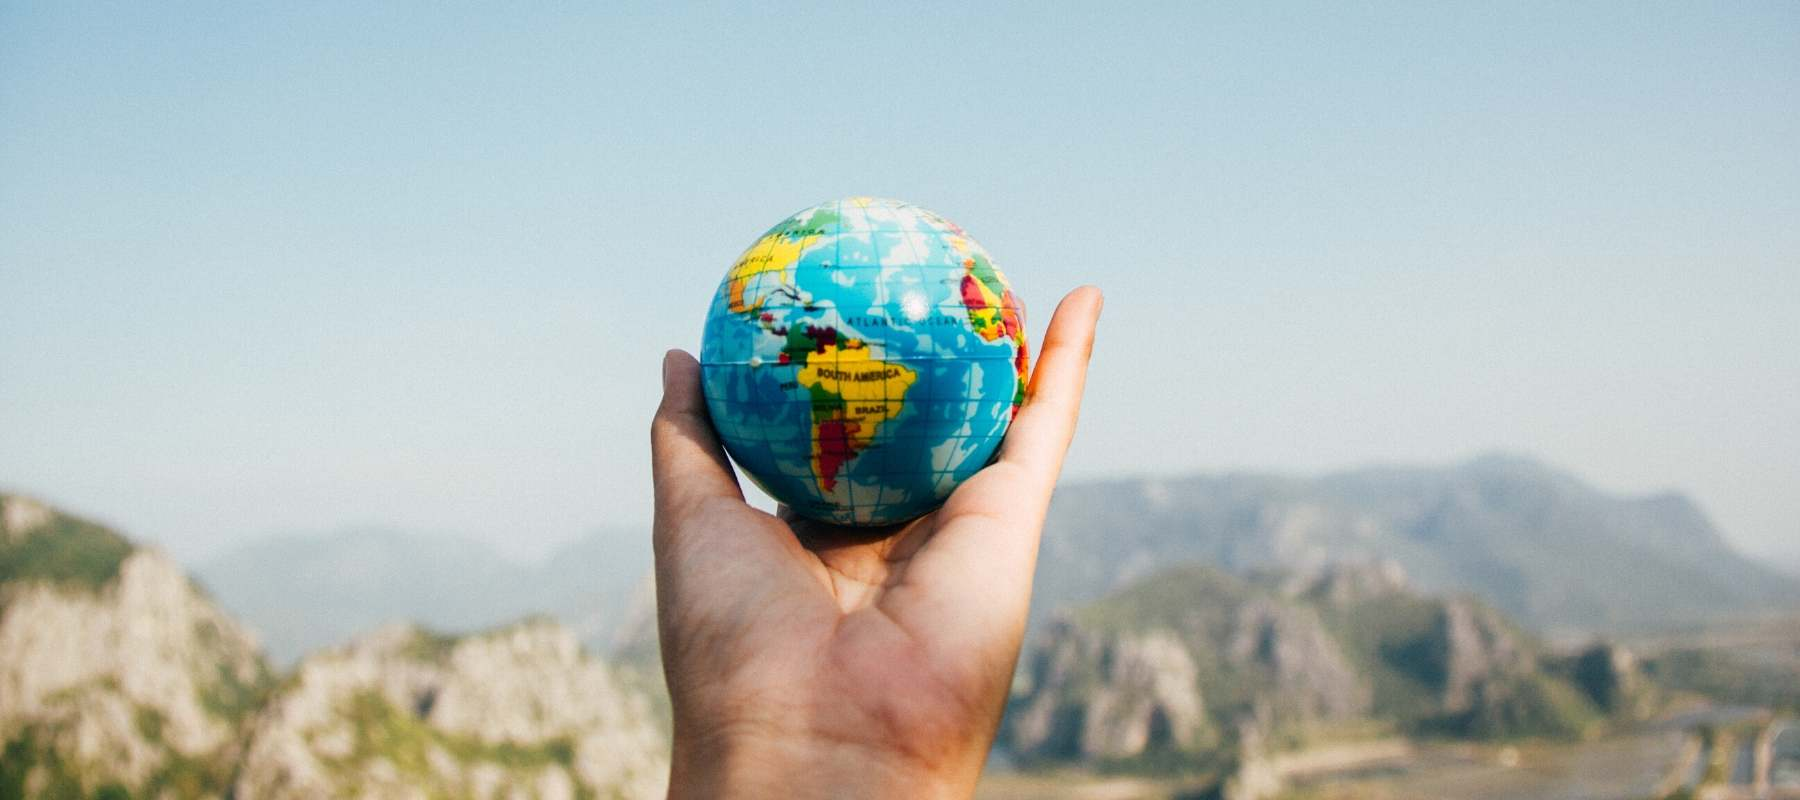 Hand holding a globe of the world against a blue sky